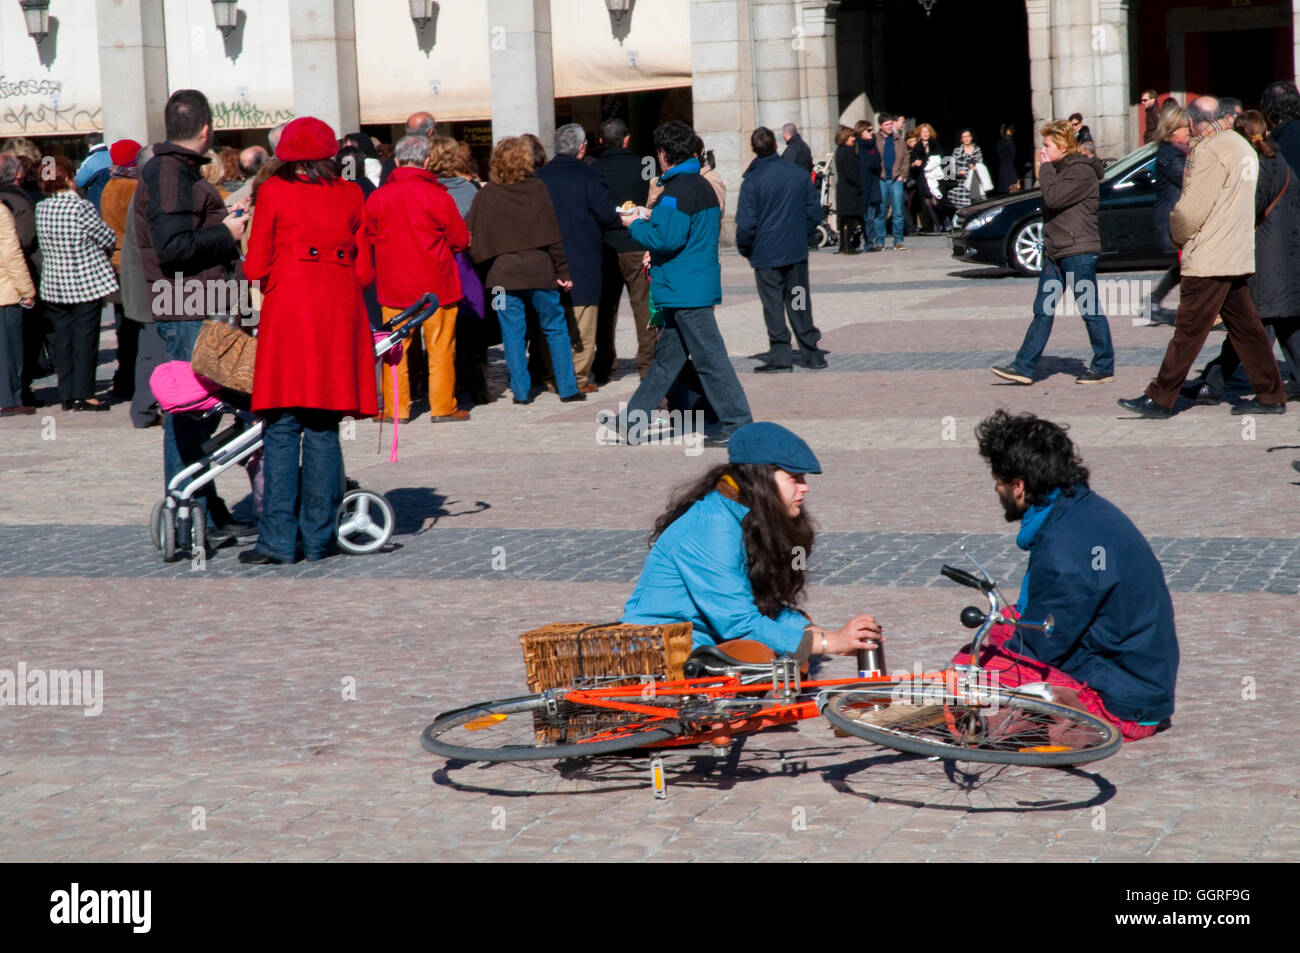 People at Main Square. Madrid, Spain. Stock Photo